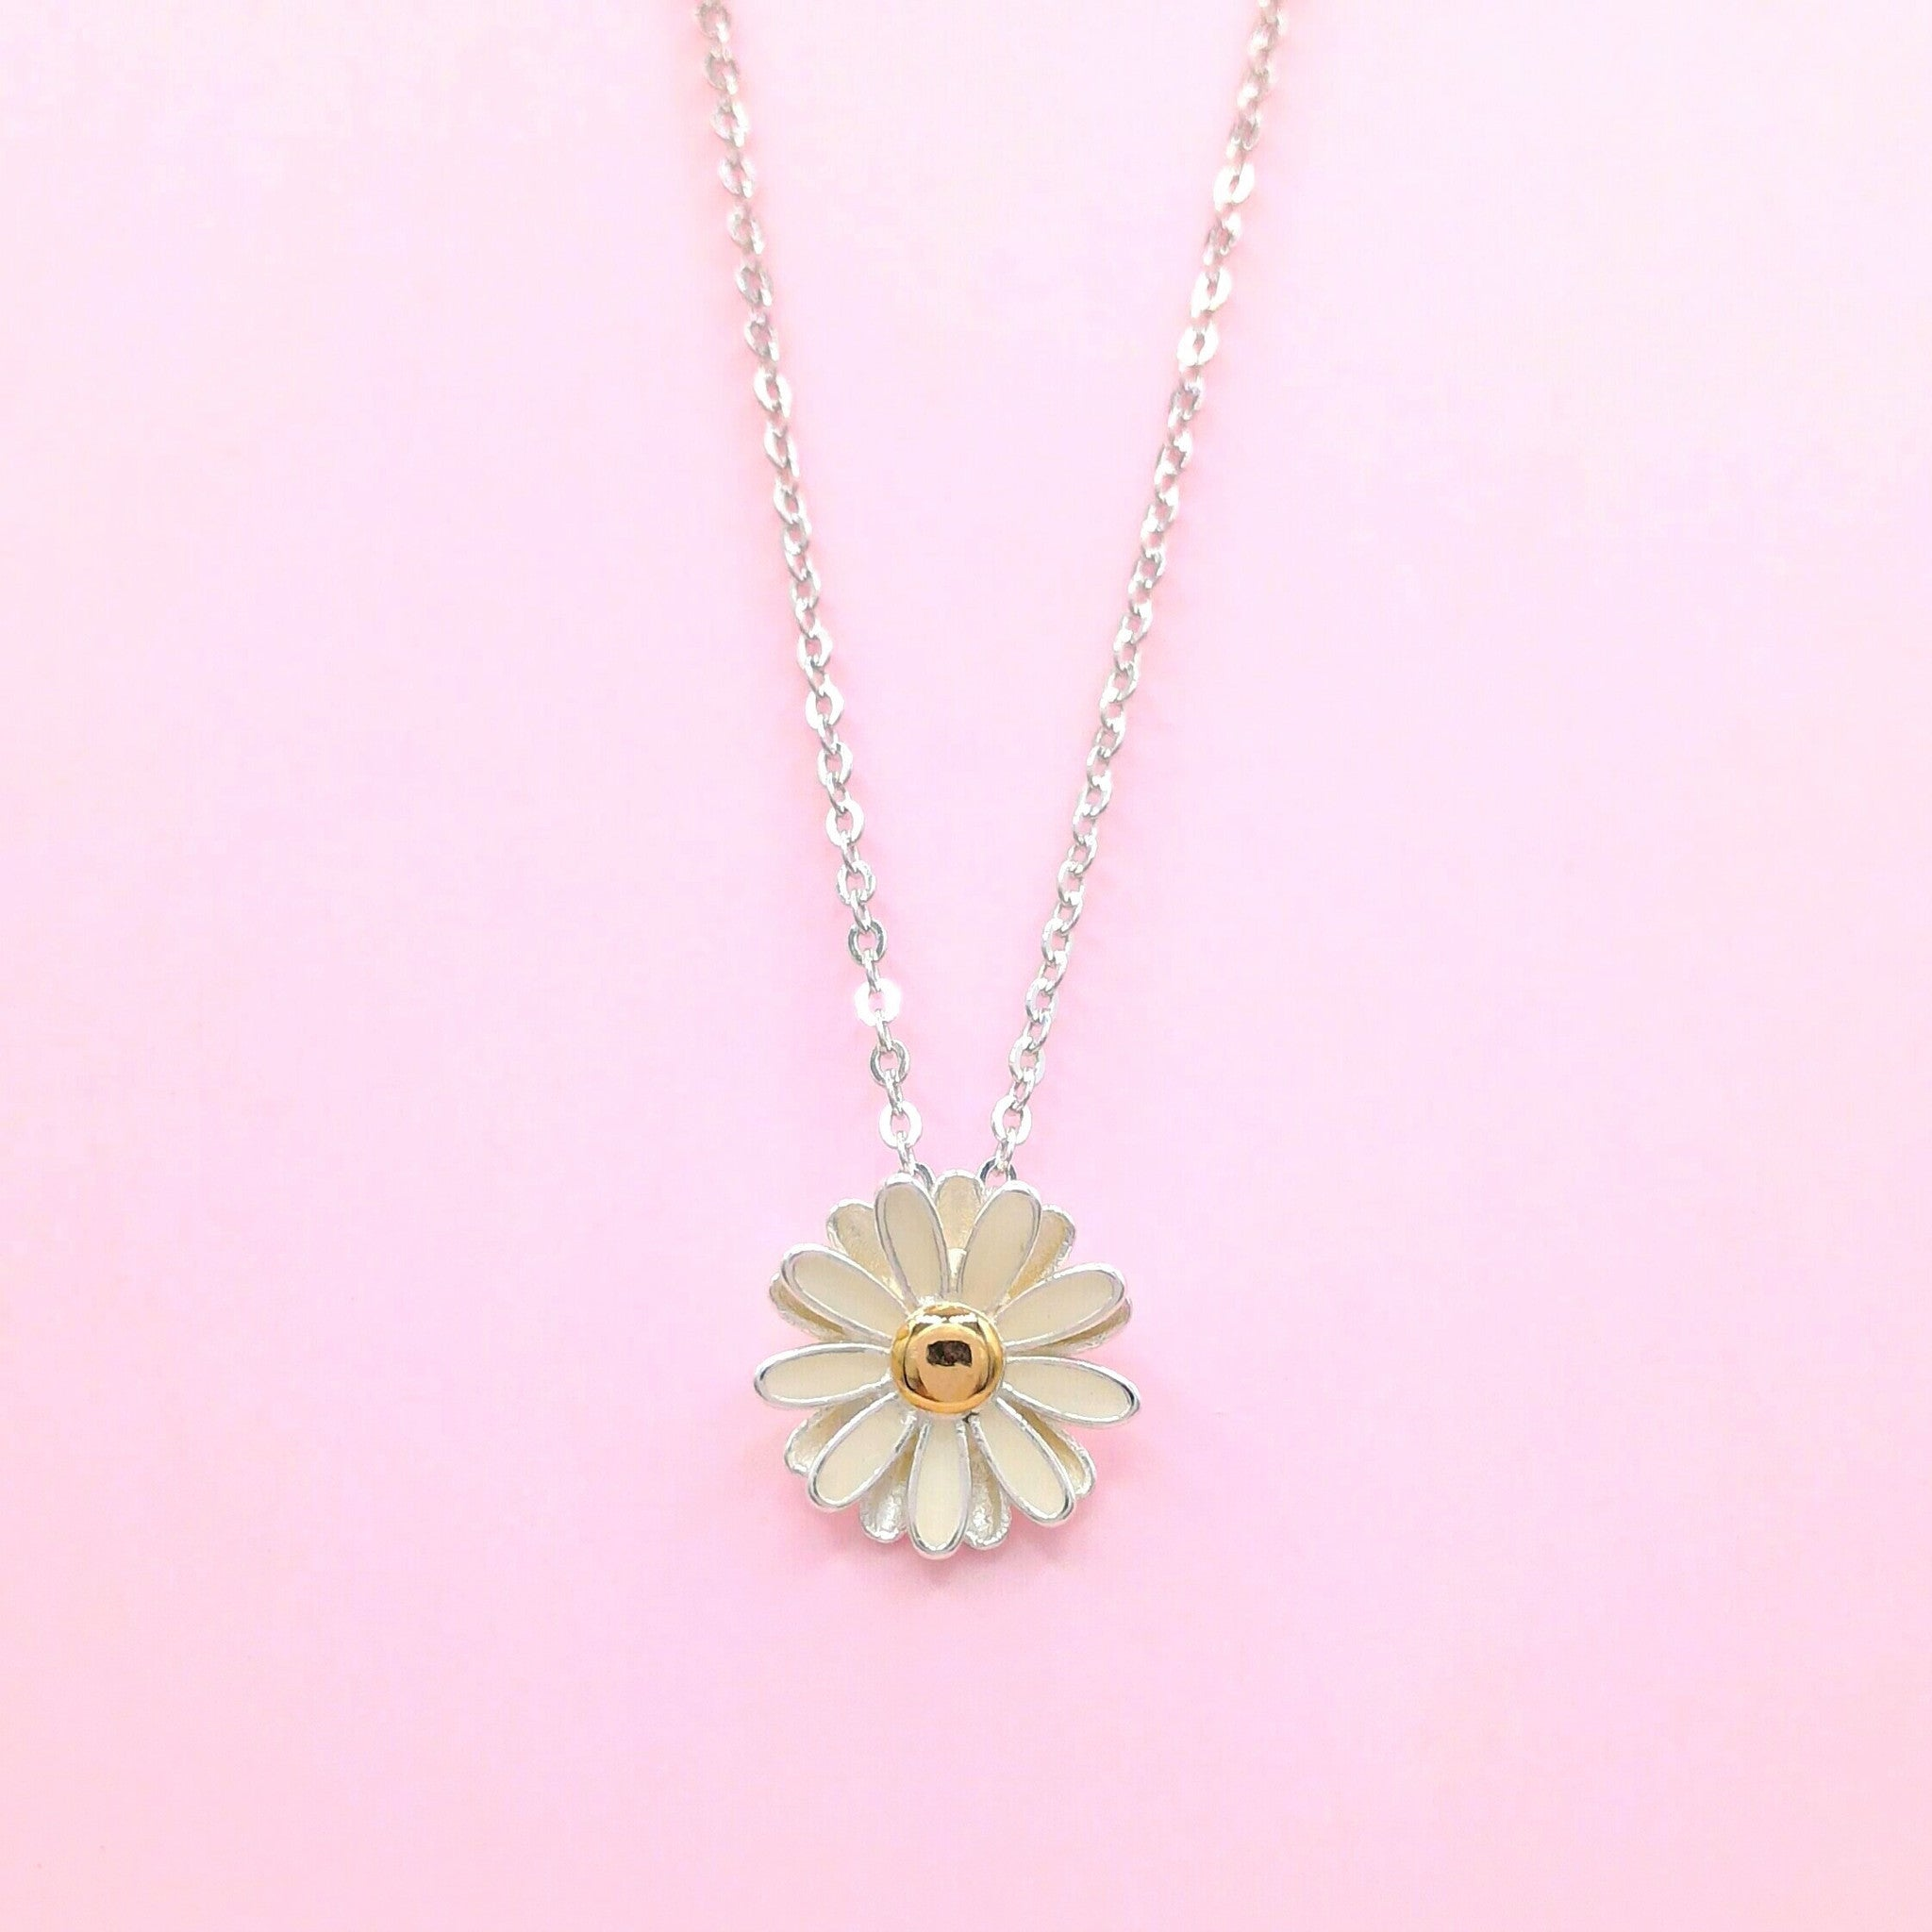 joma product necklace daisy jewellery